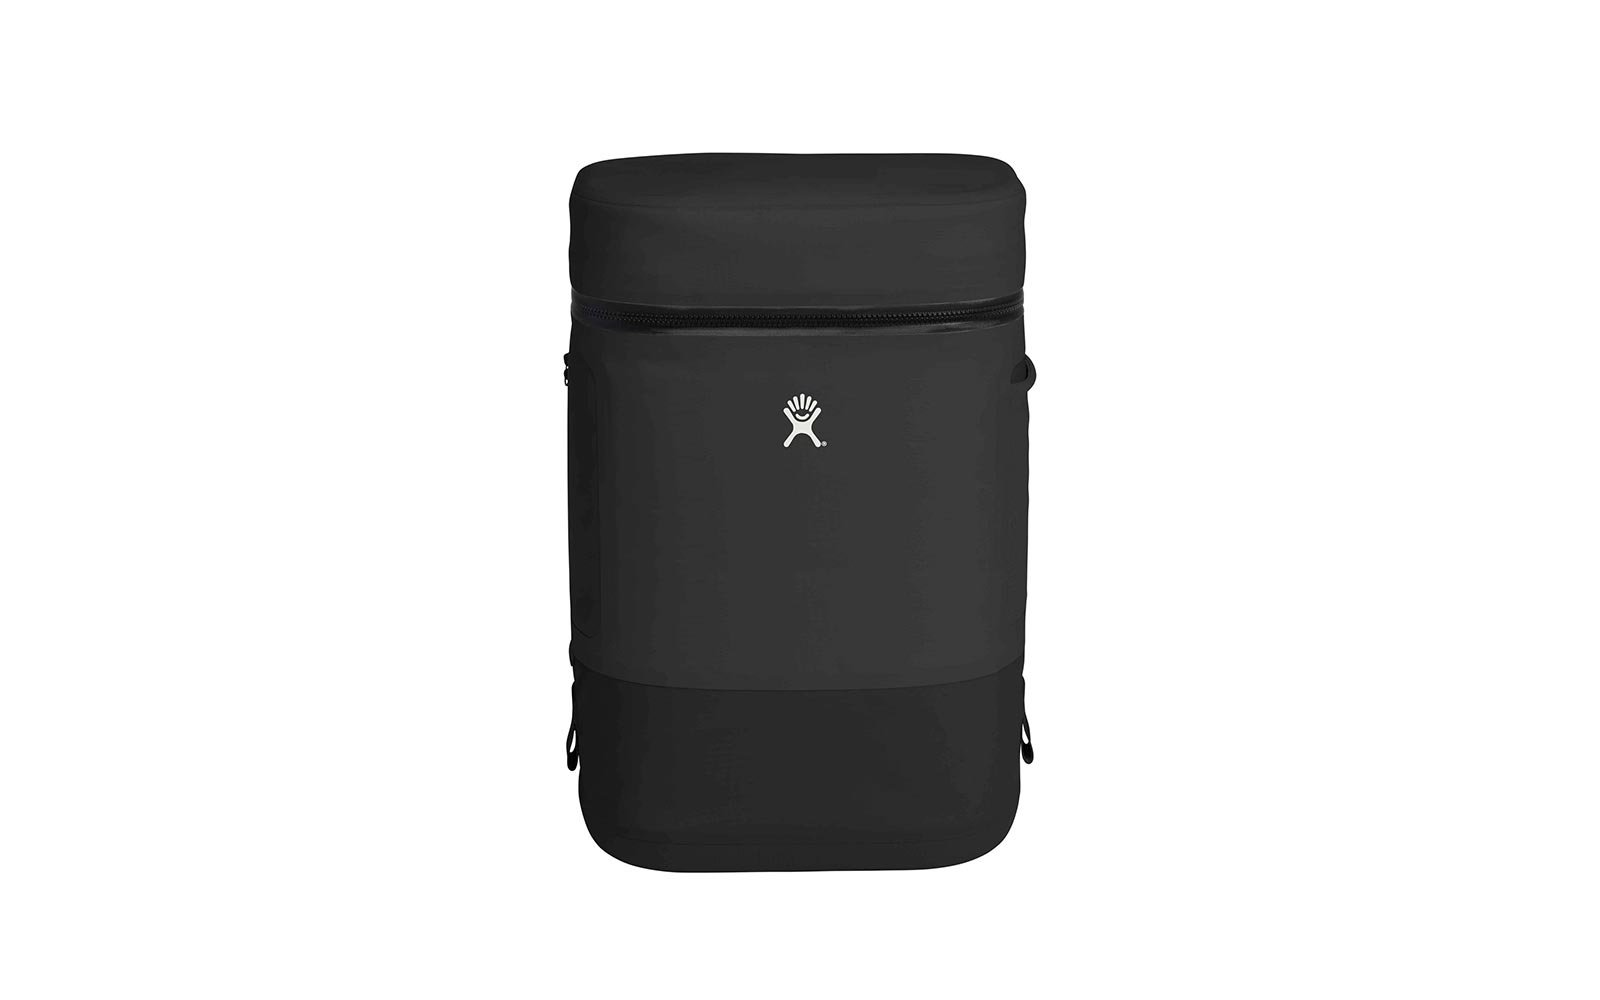 Hydroflask cooler backpack